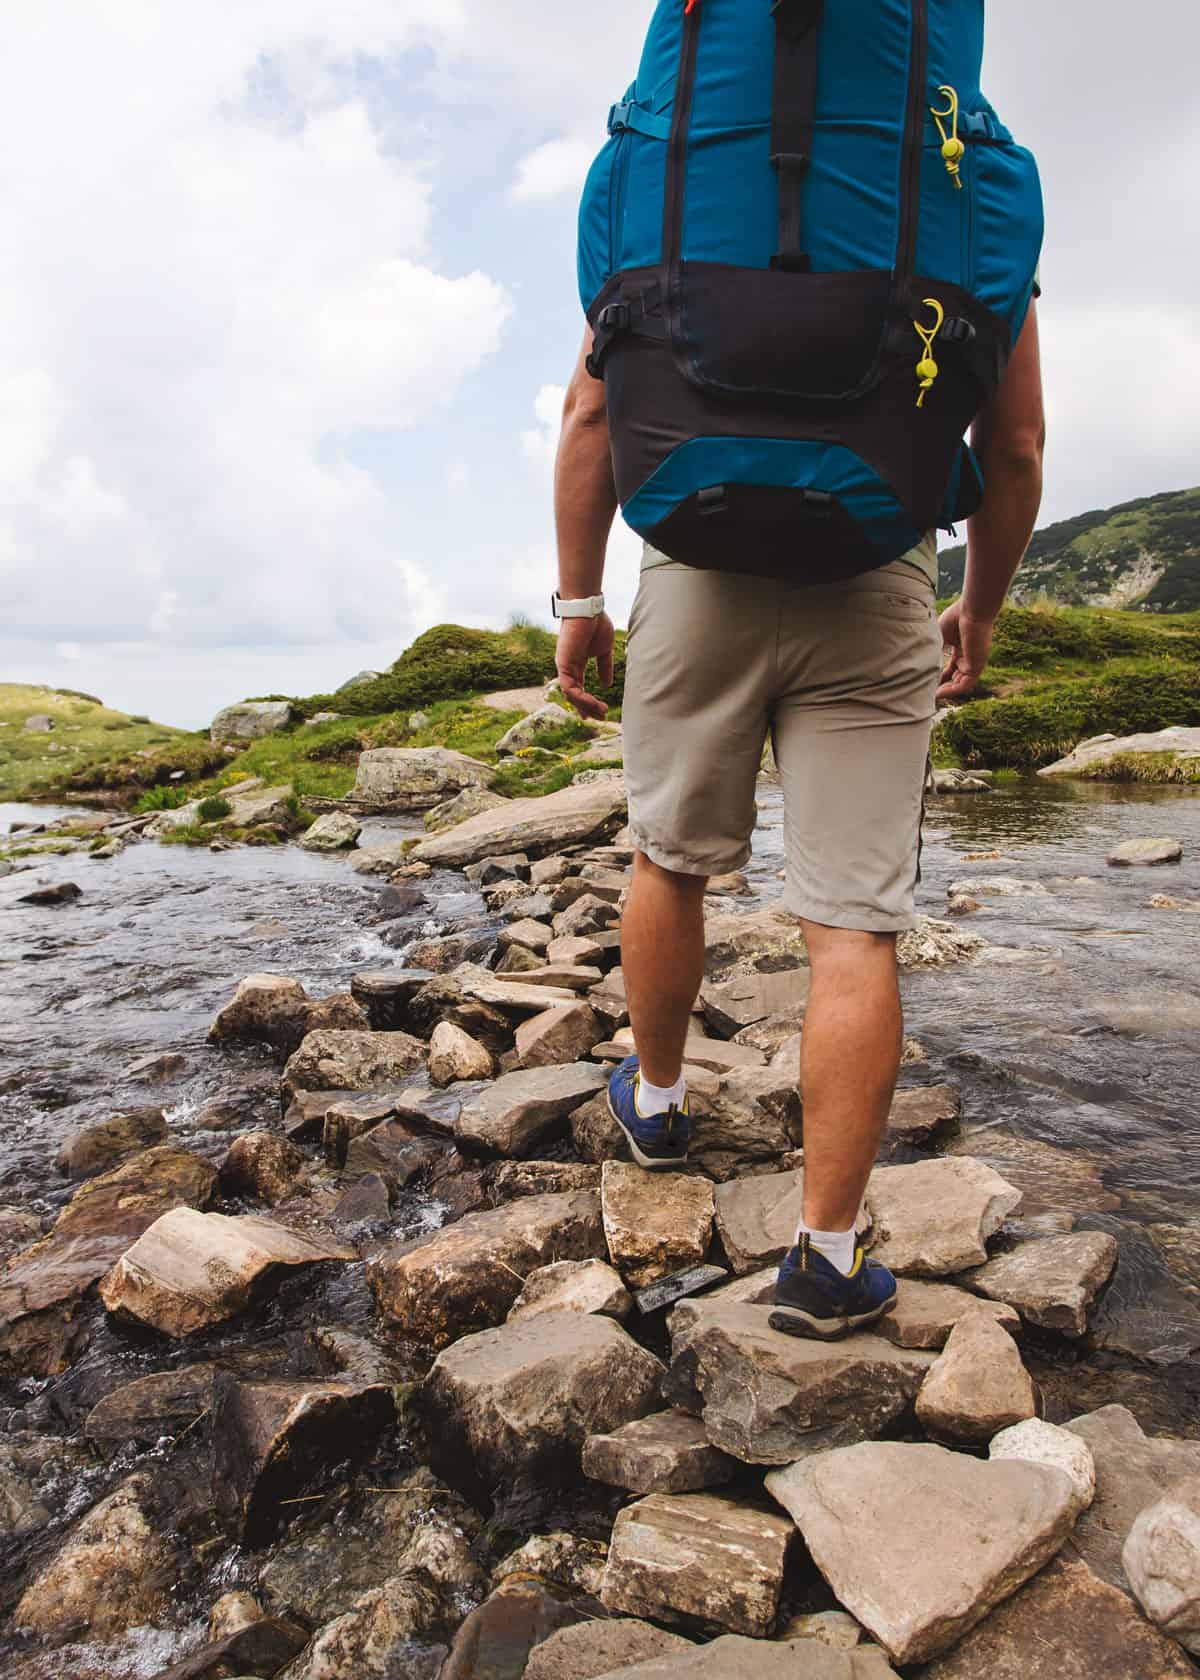 Best shoes for hiking in water